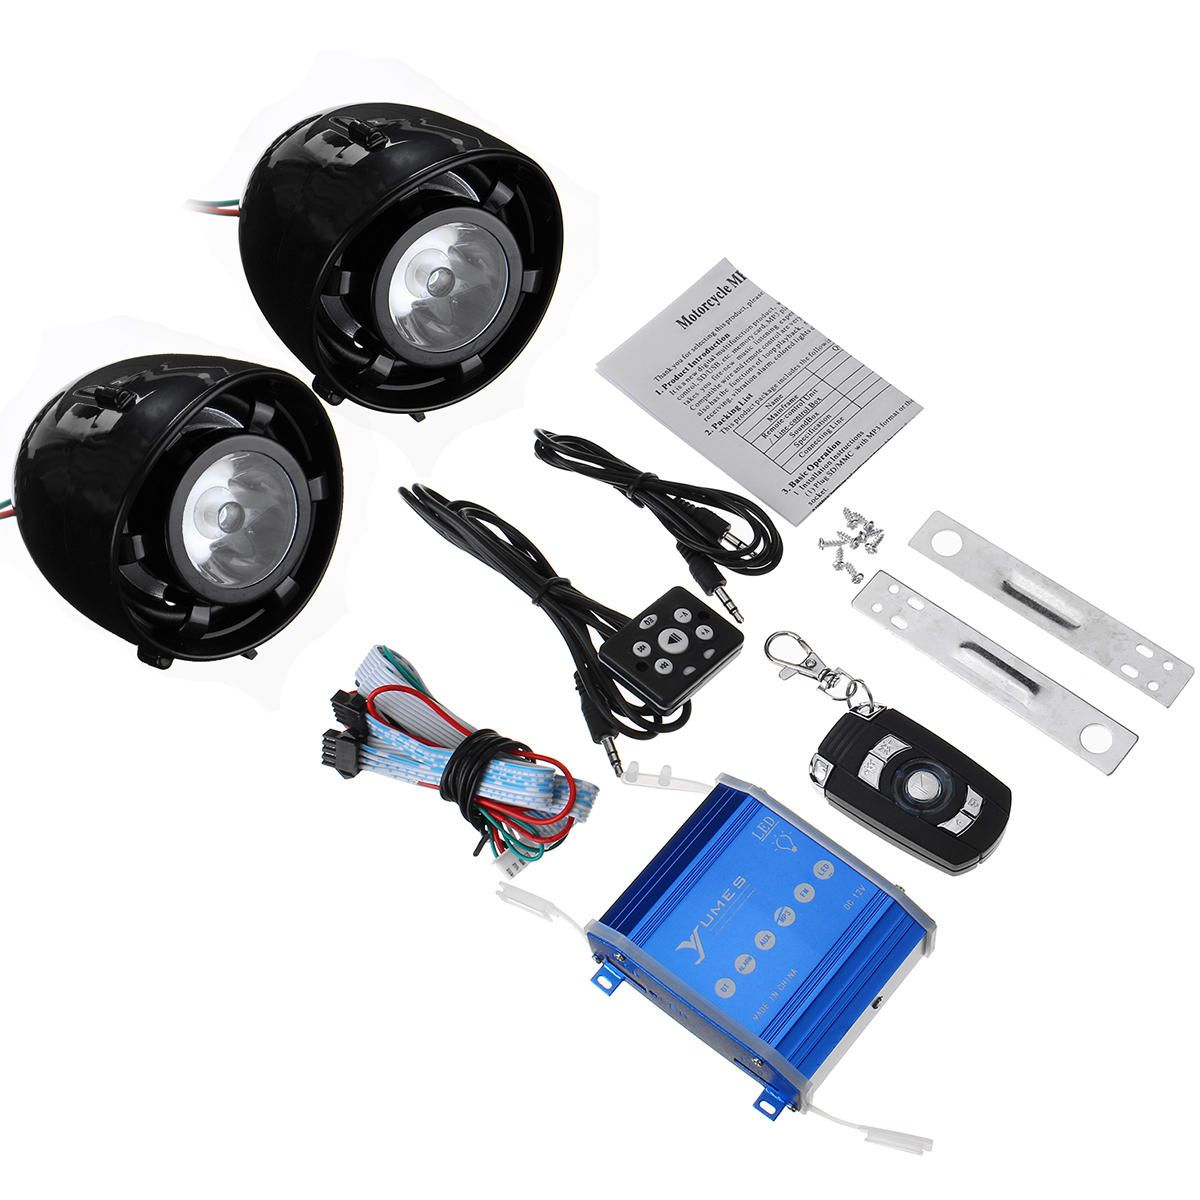 SWR US$28.89 Speaker Horns with LED Lights Motorcycle Alarm System AUX Audio MP3 Player with bluetooth Function